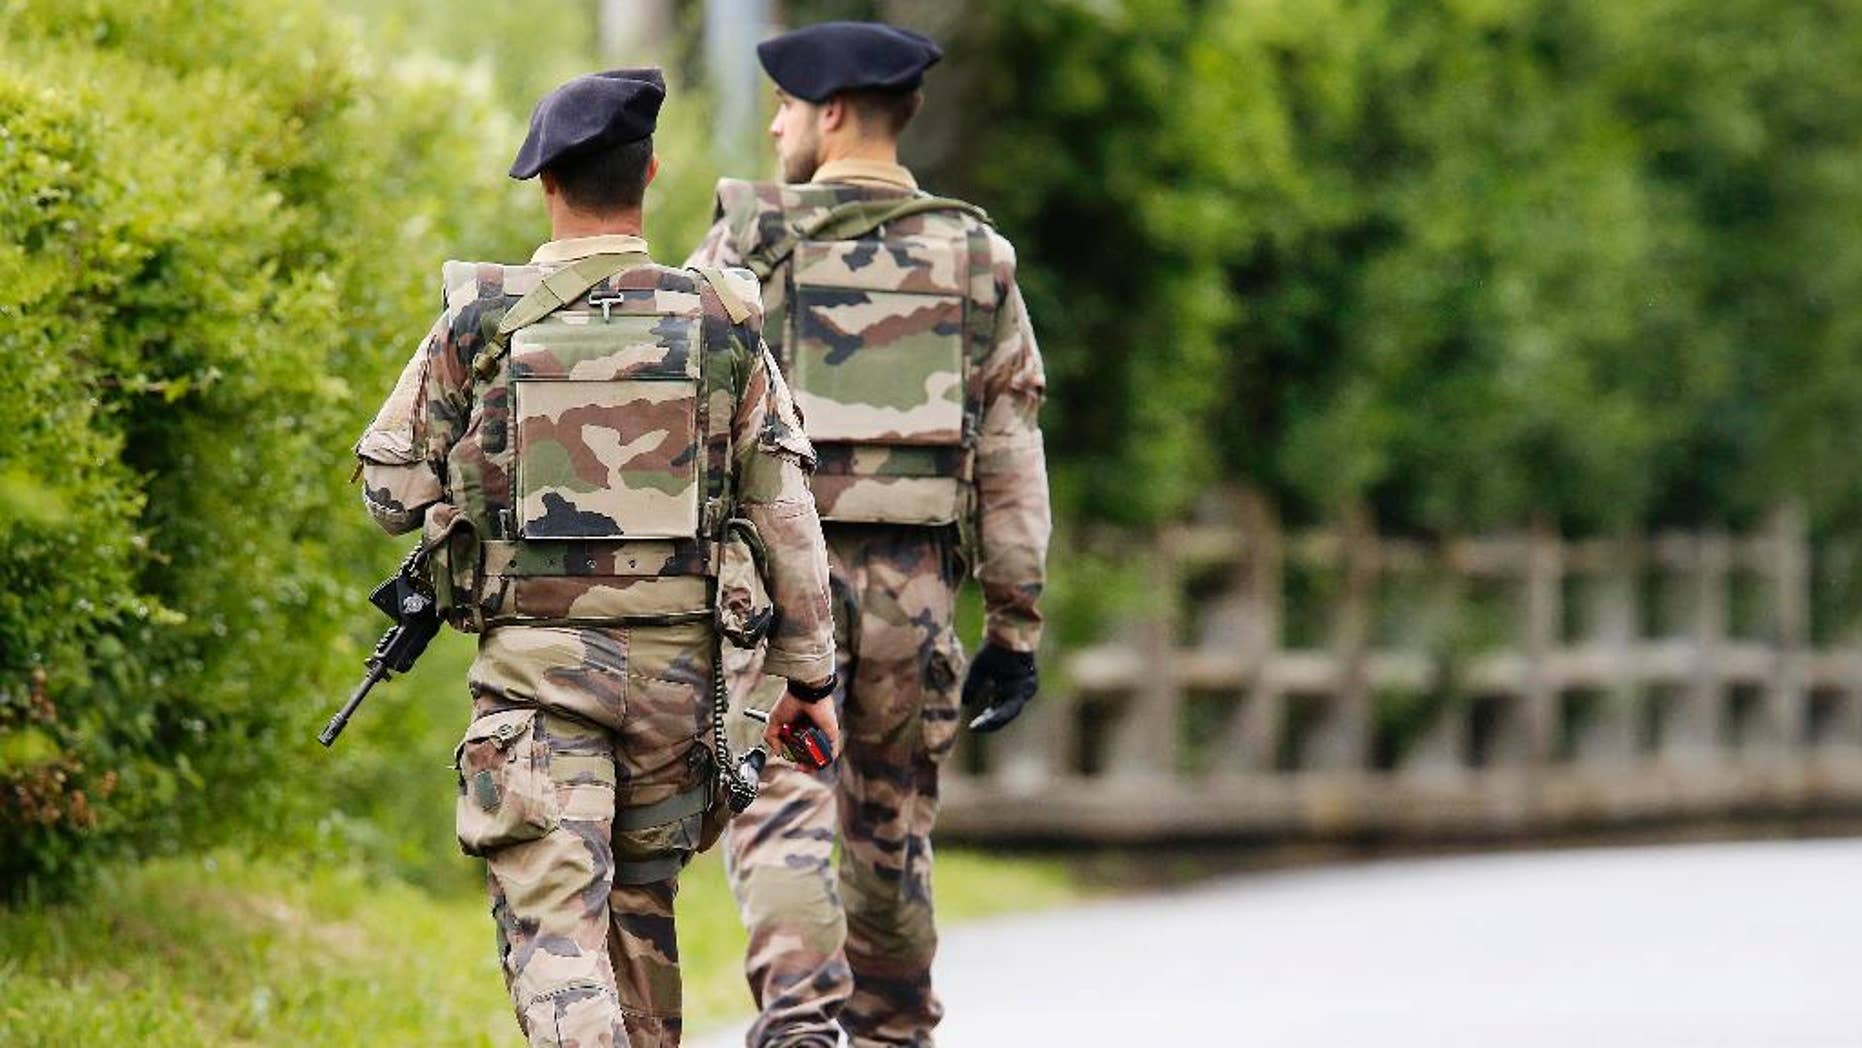 French soldiers patrol near the Camille Fournier stadium at their base camp in Evian, France, Wednesday, June 8, 2016. Germany will face the Ukraine in a Euro 2016 Group C soccer match in Lille on Sunday, June, 12, 2016. (AP Photo/Michael Probst)